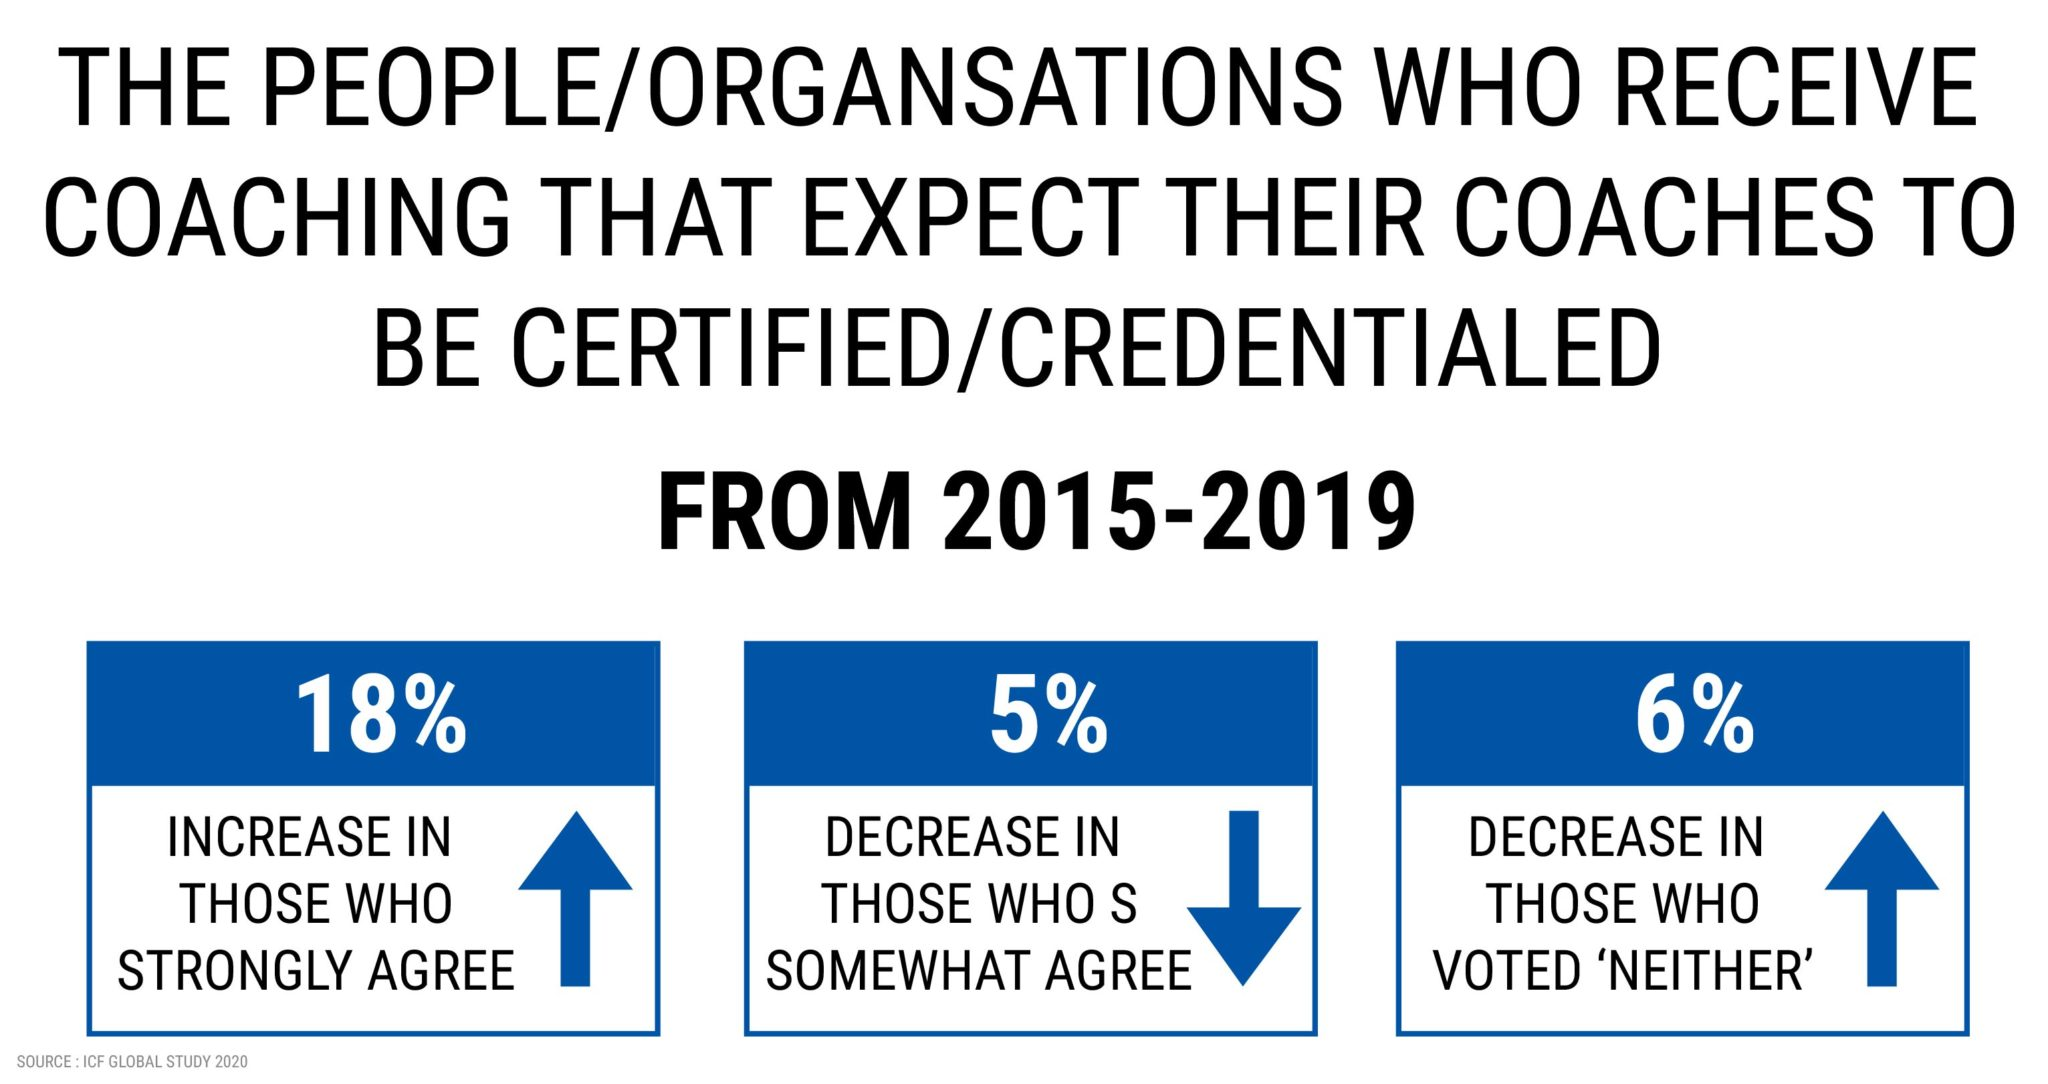 THE PEOPLE /ORGANISATIONS WHO RECEIVE COACHING THAT ECXPECT THEIR COACHES TO BE CERTIFIED/CREDENTIALED